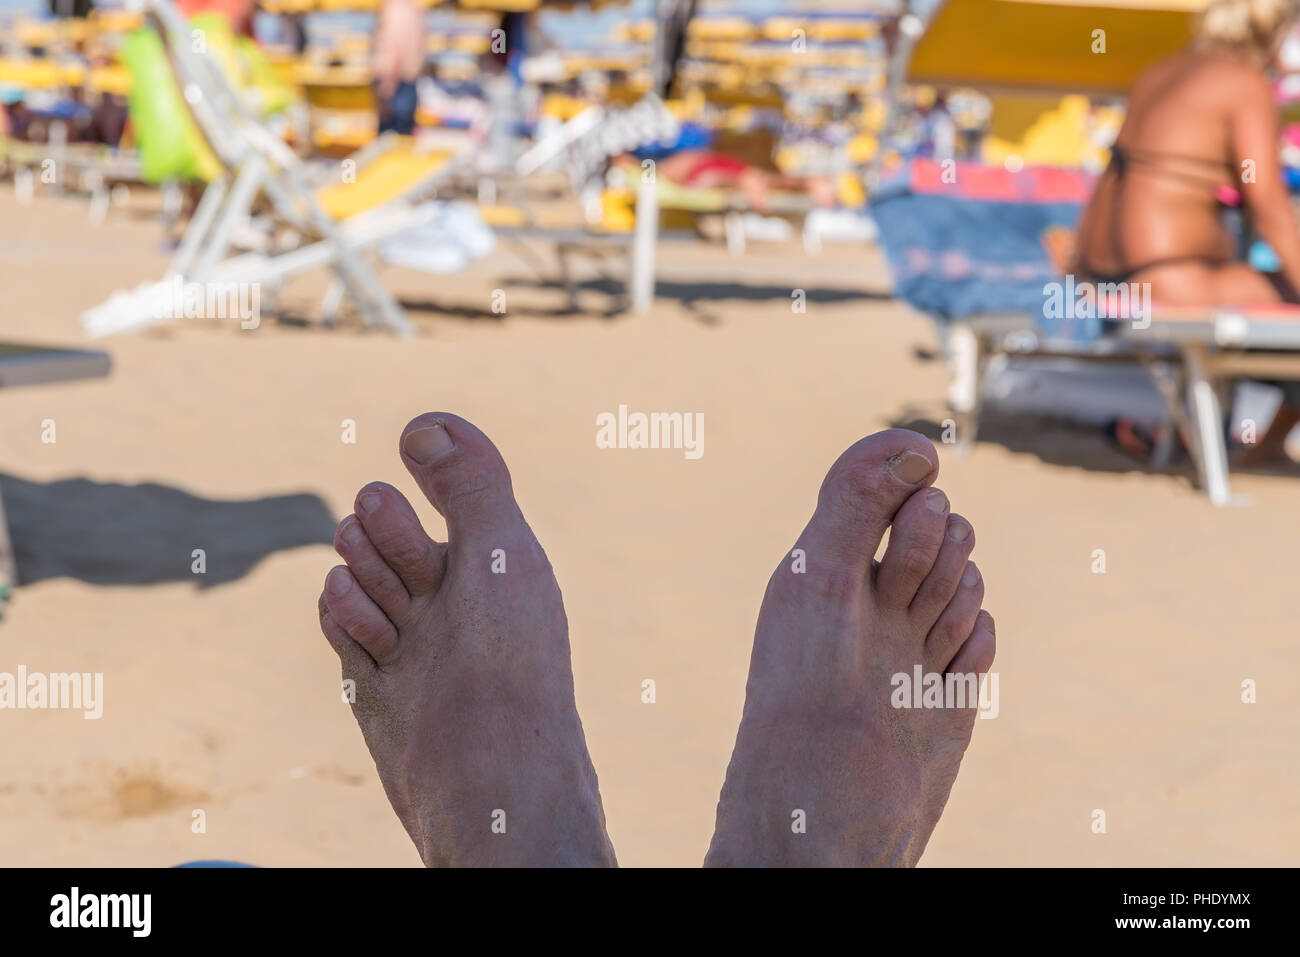 Feet on a sunbed at the beach - Stock Image